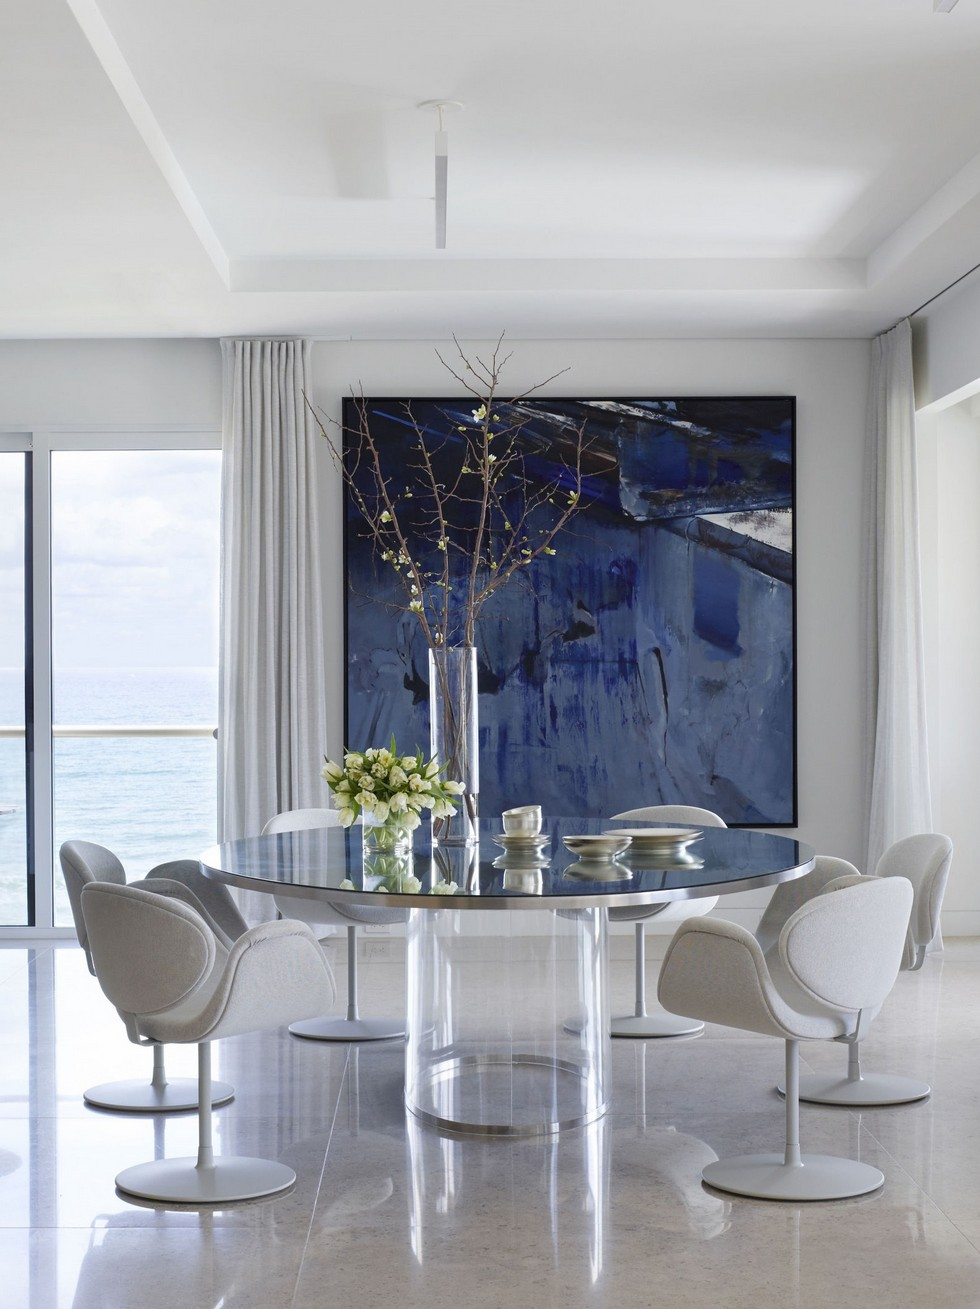 The New Contemporary Apartment in Palm Beach with Art and Coastal Decor Contemporary Apartment New Contemporary Apartment in Palm Beach with Art and Coastal Decor The New Contemporary Apartment in Palm Beach with Art and Coastal Decor Contemporary Apartment